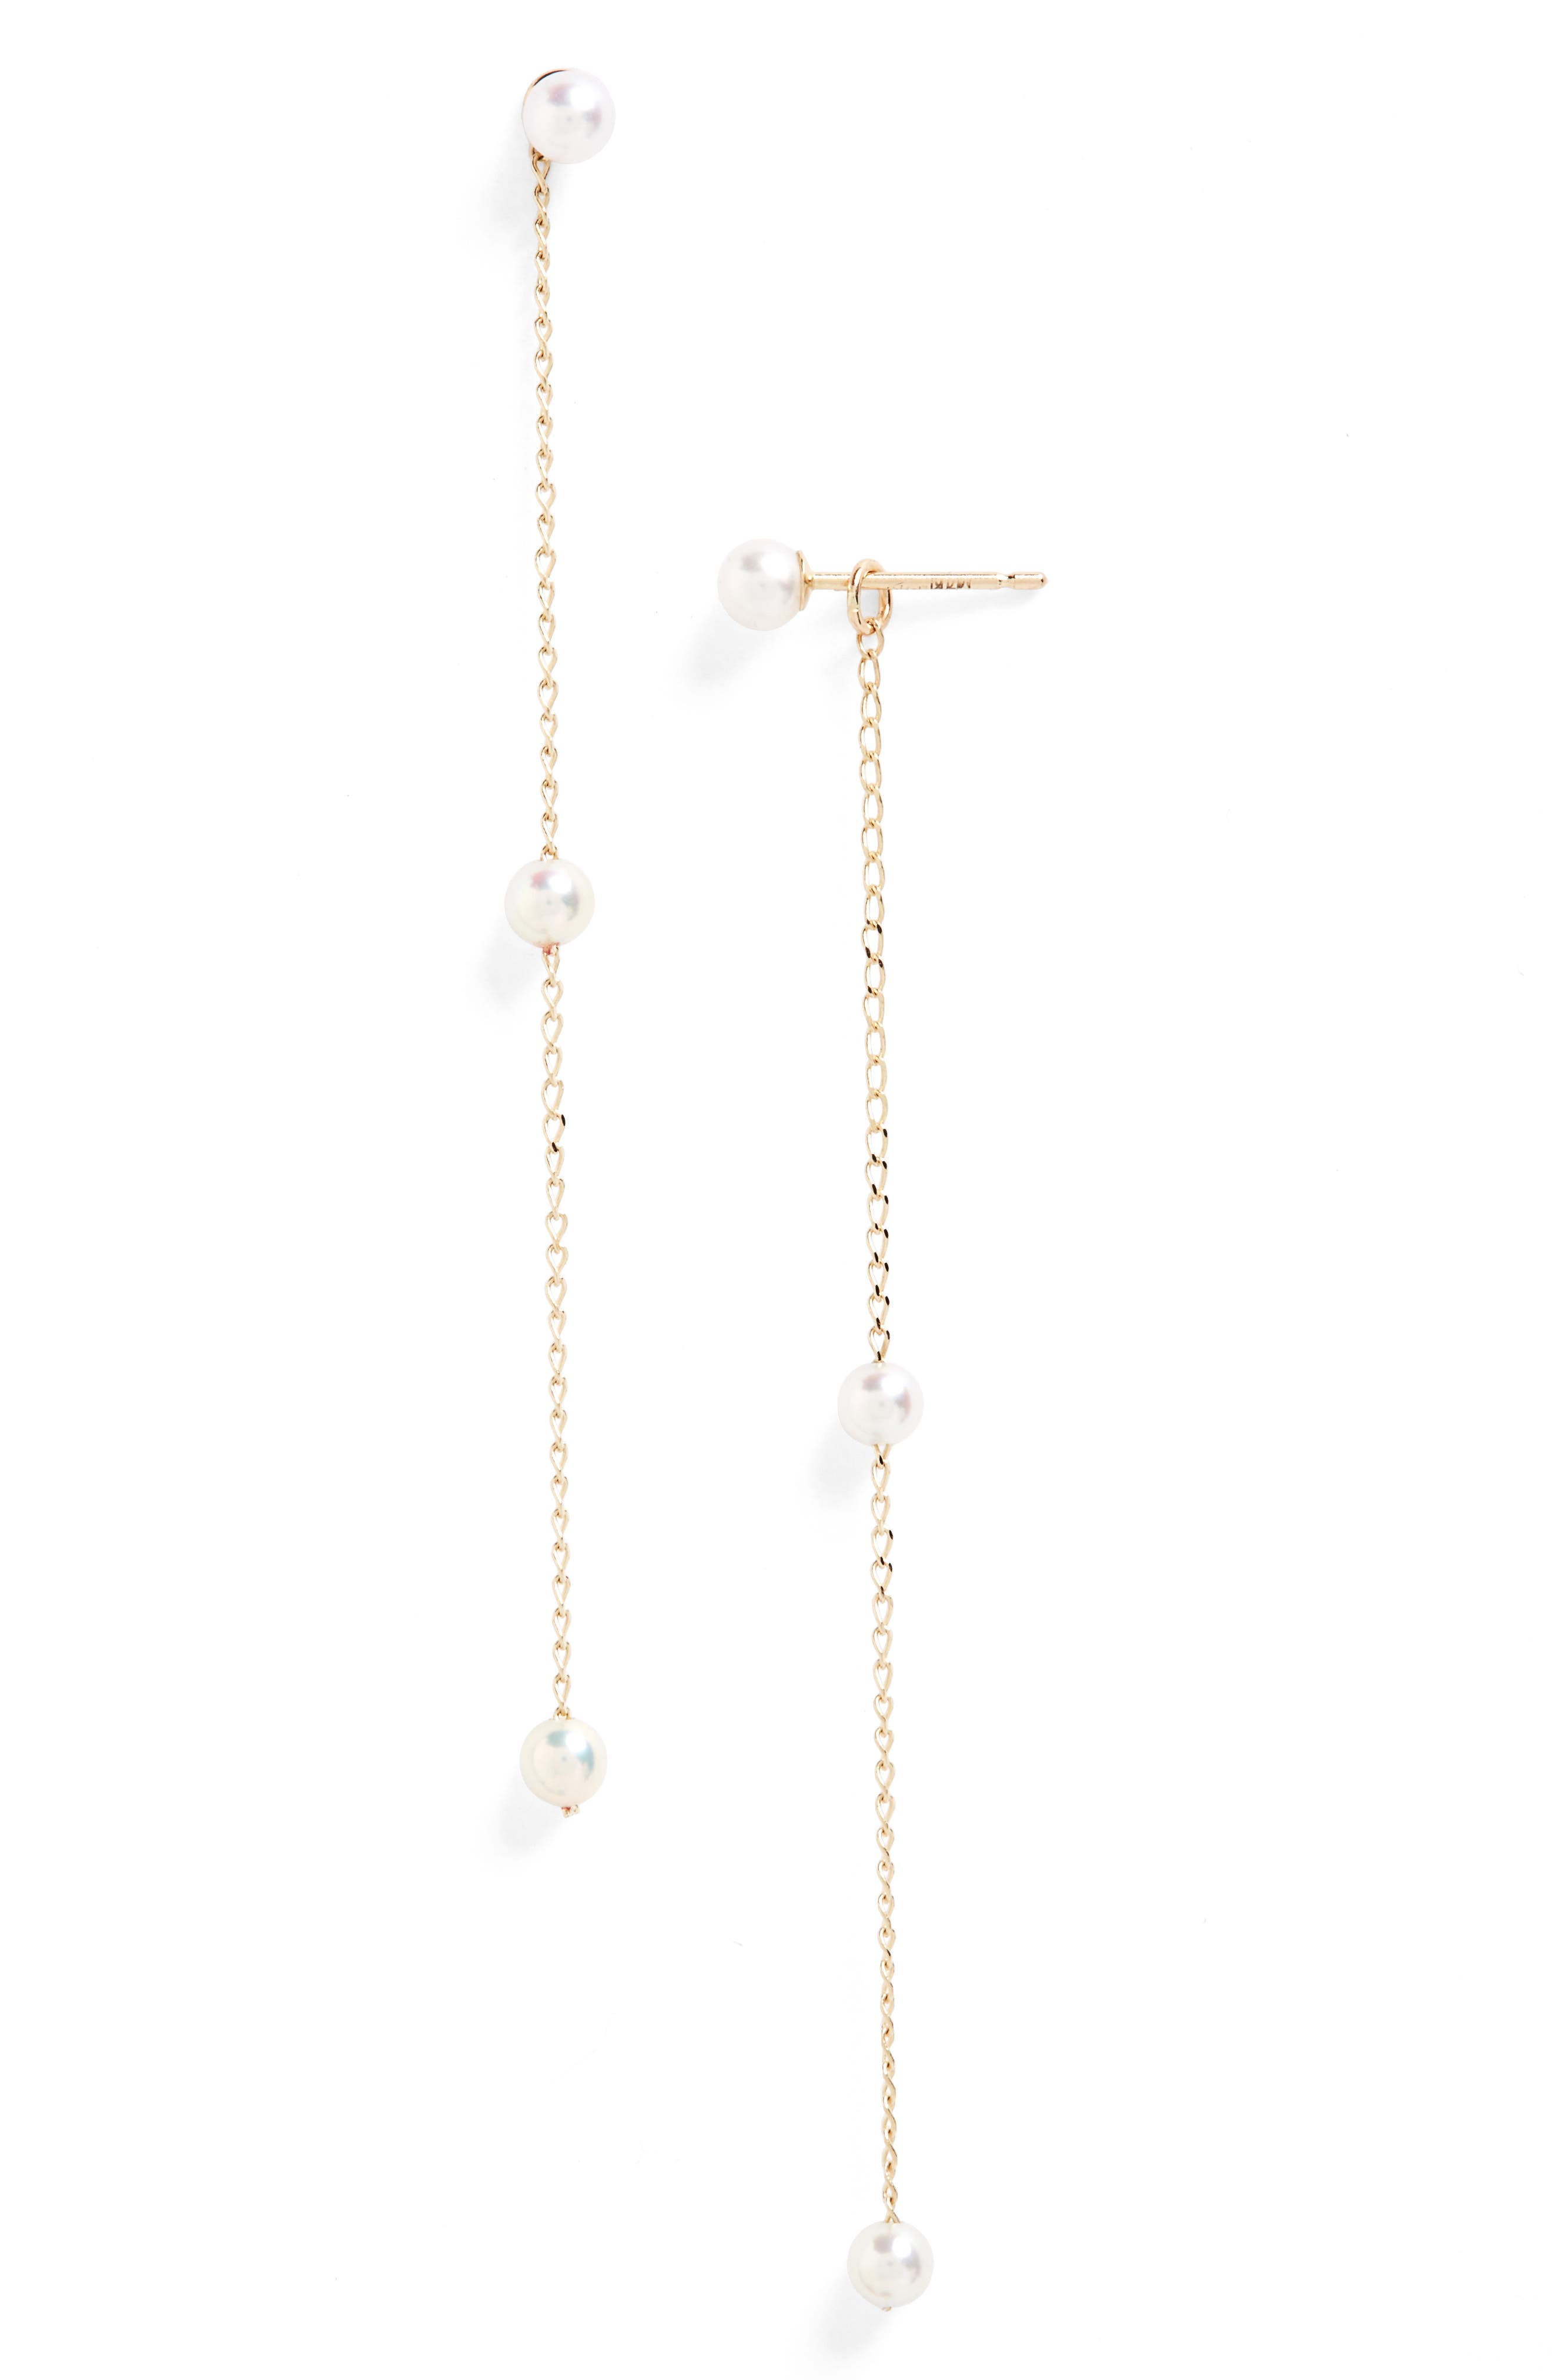 Sea of Beauty Pearl Convertible Drop Earrings,                         Main,                         color, YELLOW GOLD/ WHITE PEARL